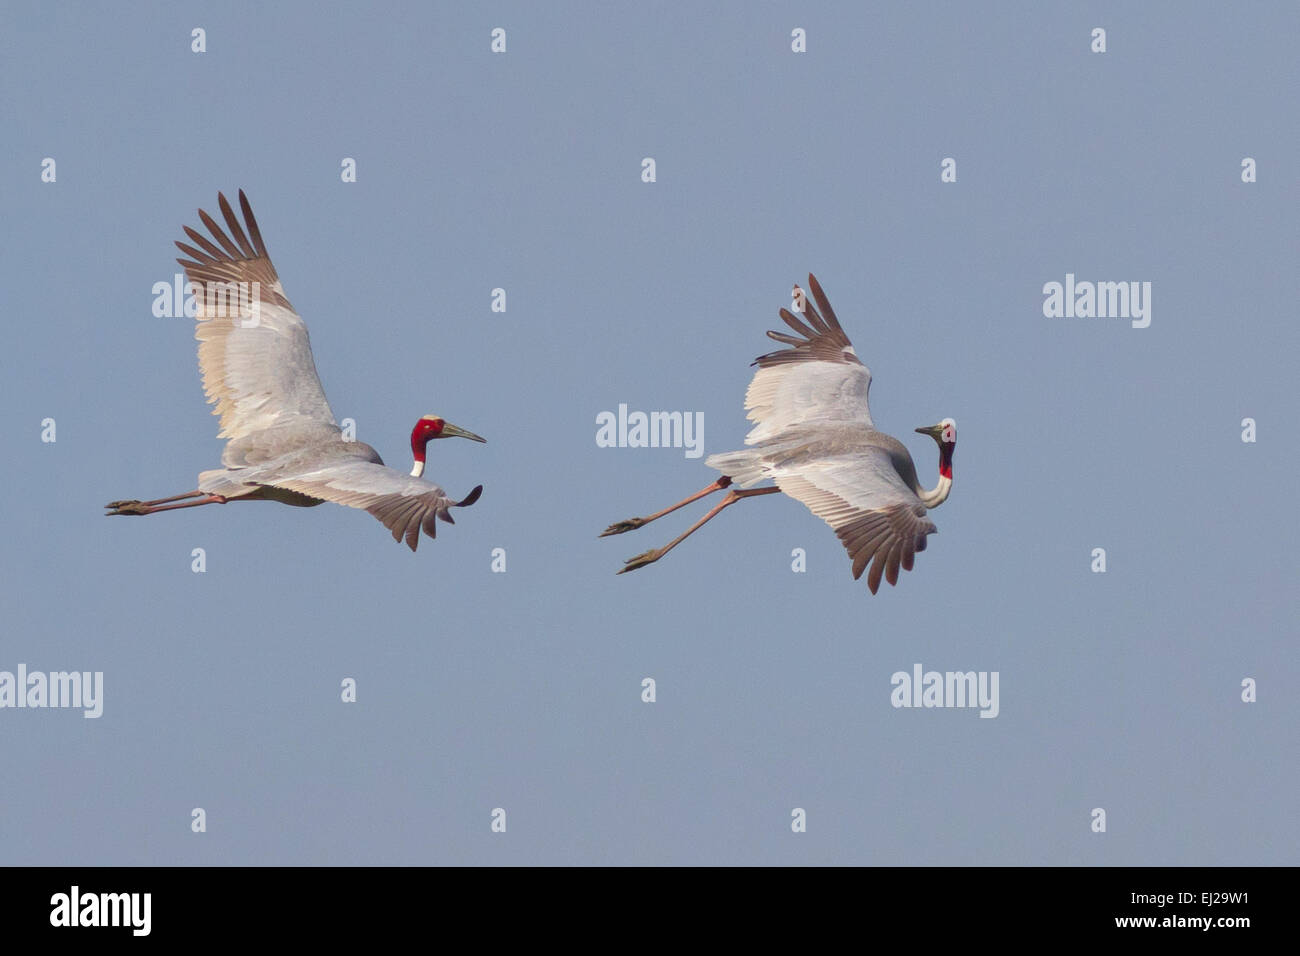 Sarus or Indian cranes (Grus antigone) in flight - Stock Image